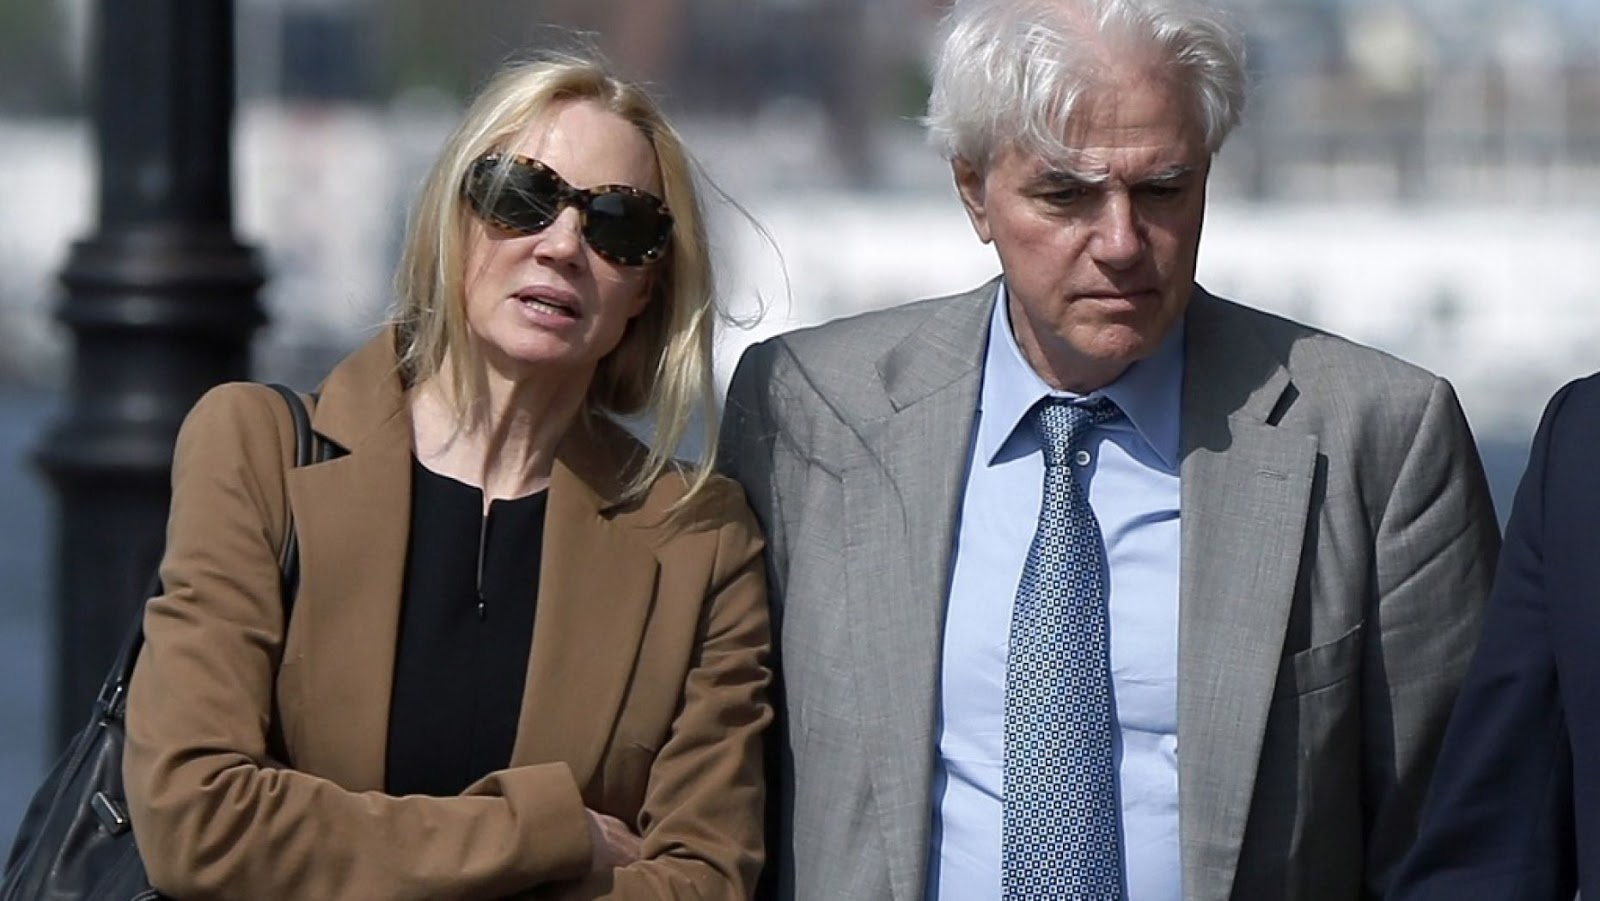 In a college admission scandal, husband and wife both to serve one month in prison